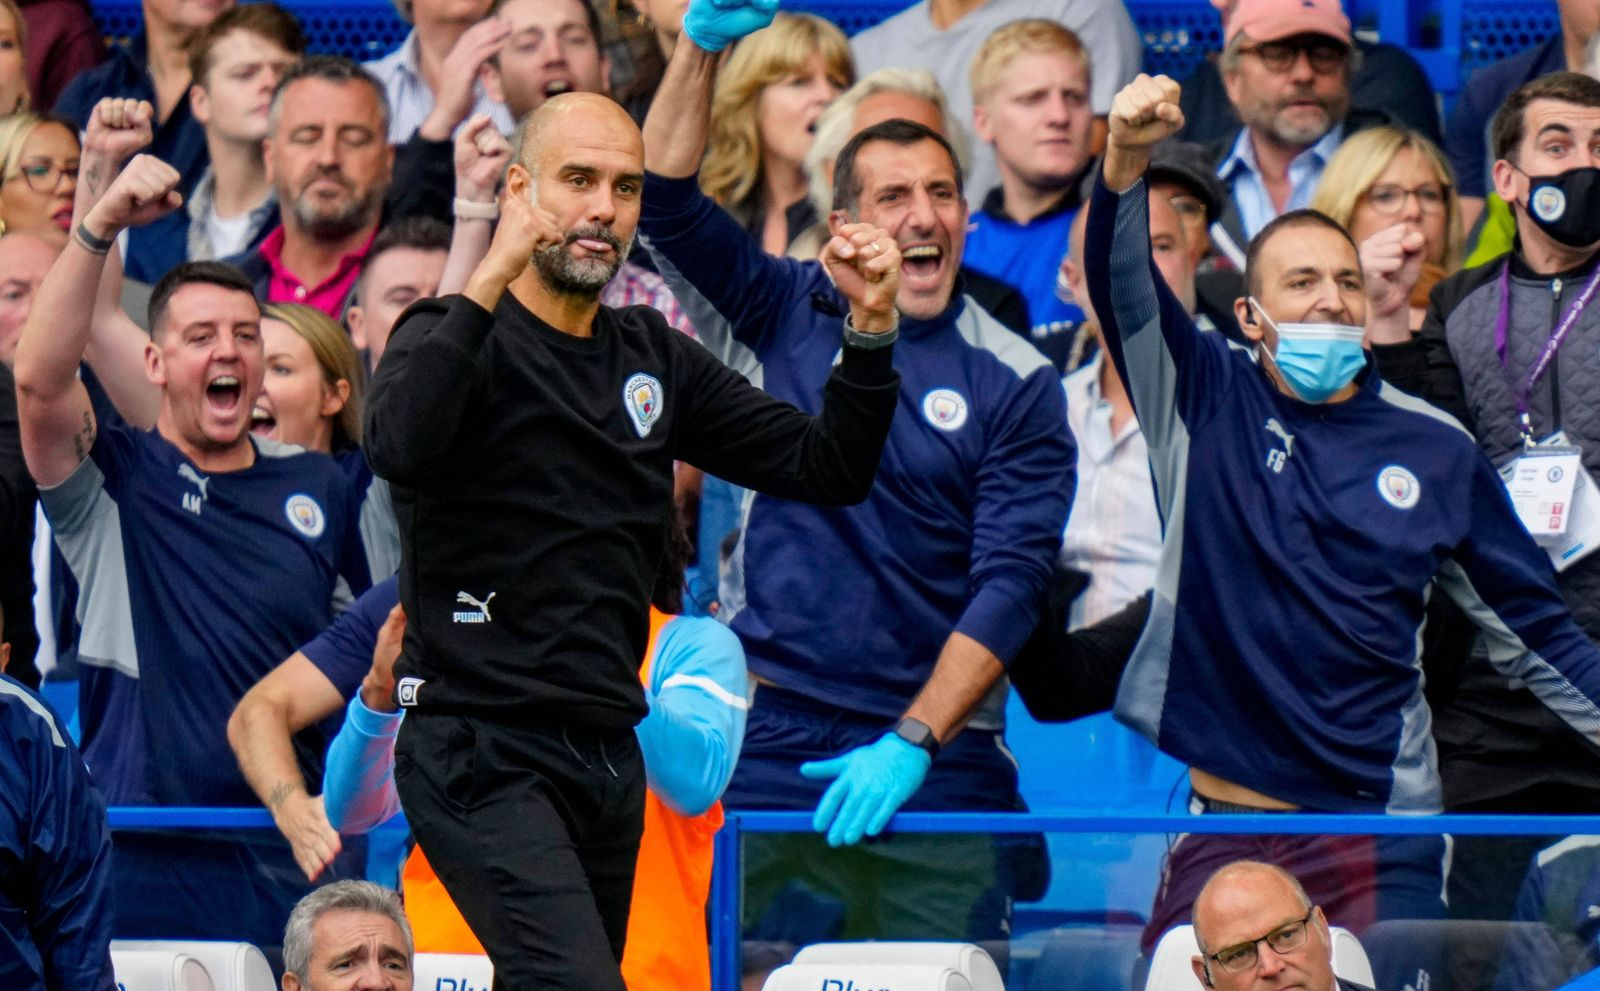 Mandatory Credit: Photo by Javier Garcia/Shutterstock (12463206ch) Pep Guardiola Manchester City Manager celebrates on